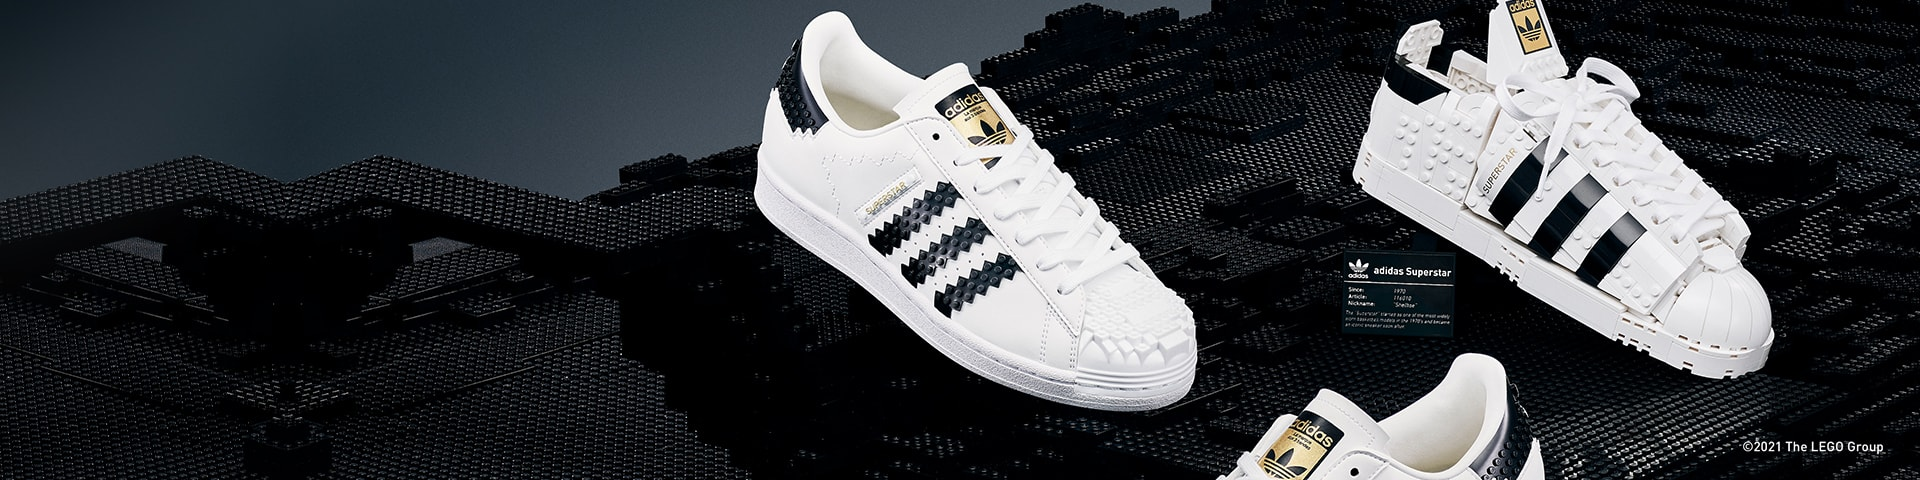 adidas x LEGO® Clothing & Shoes   Members Get 33% Off with Code ALLSET